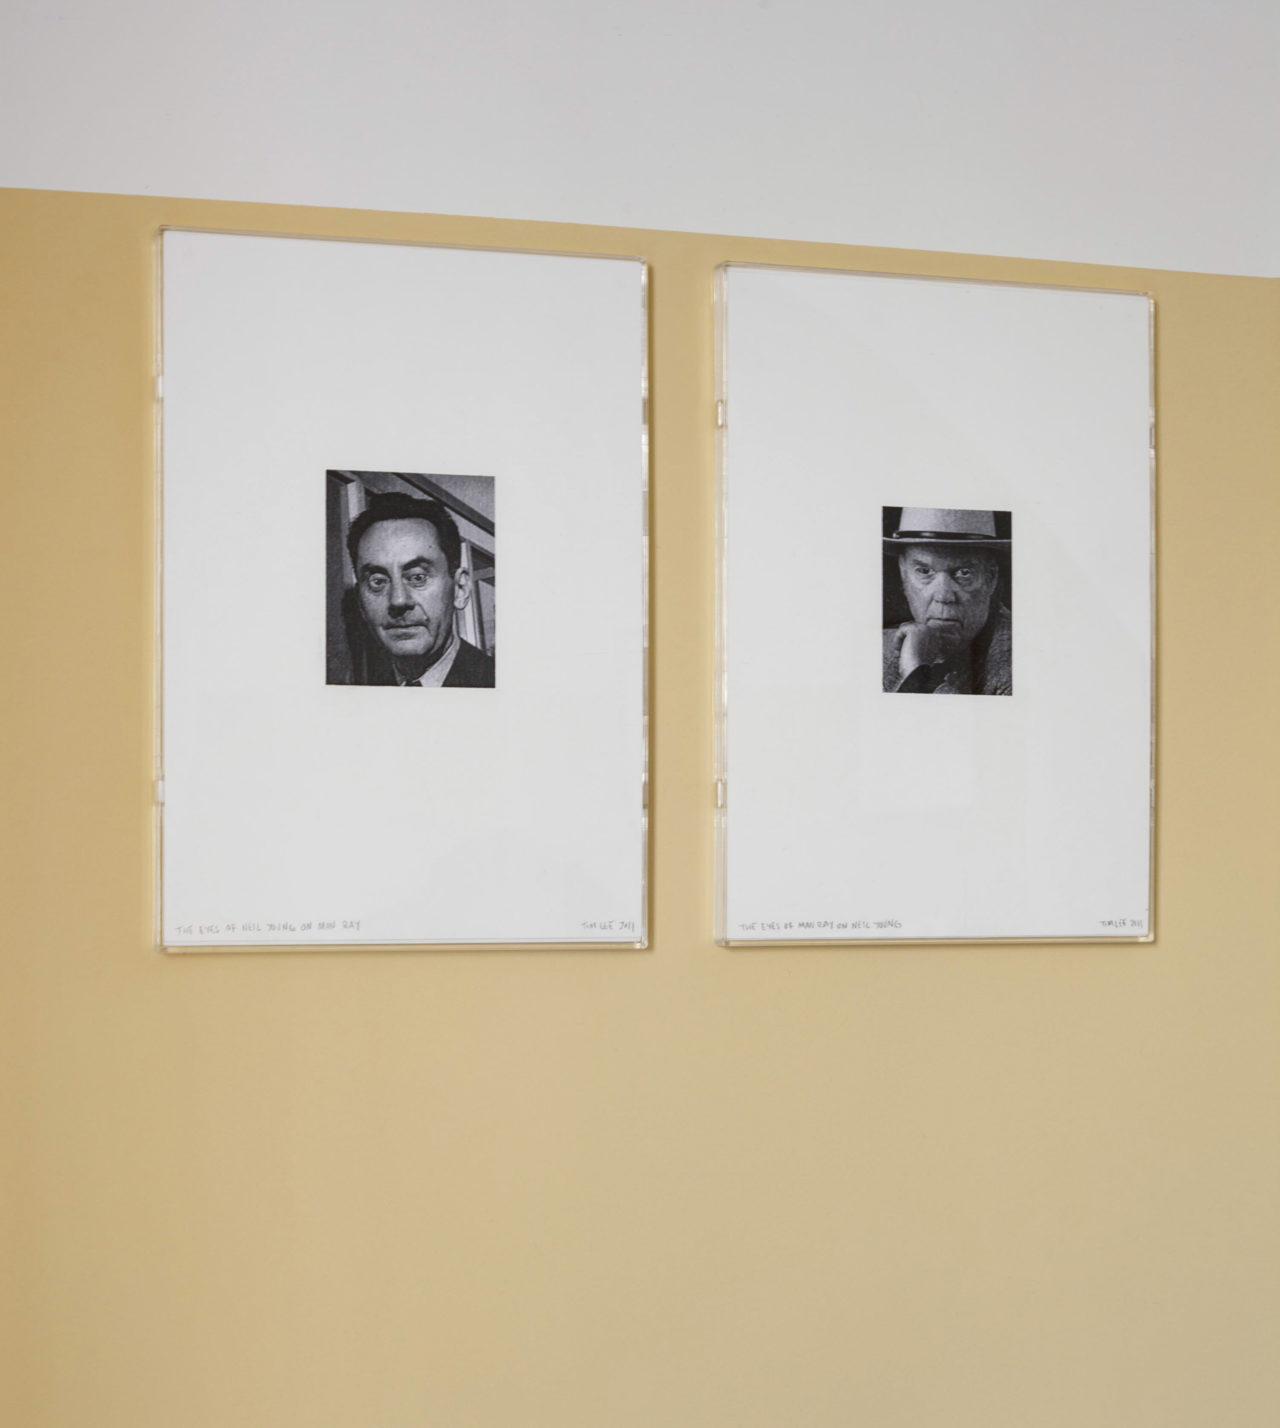 Tim Lee, The eyes of Neil Young on Man Ray / The eyes of Man Ray on Neil Young (2011)